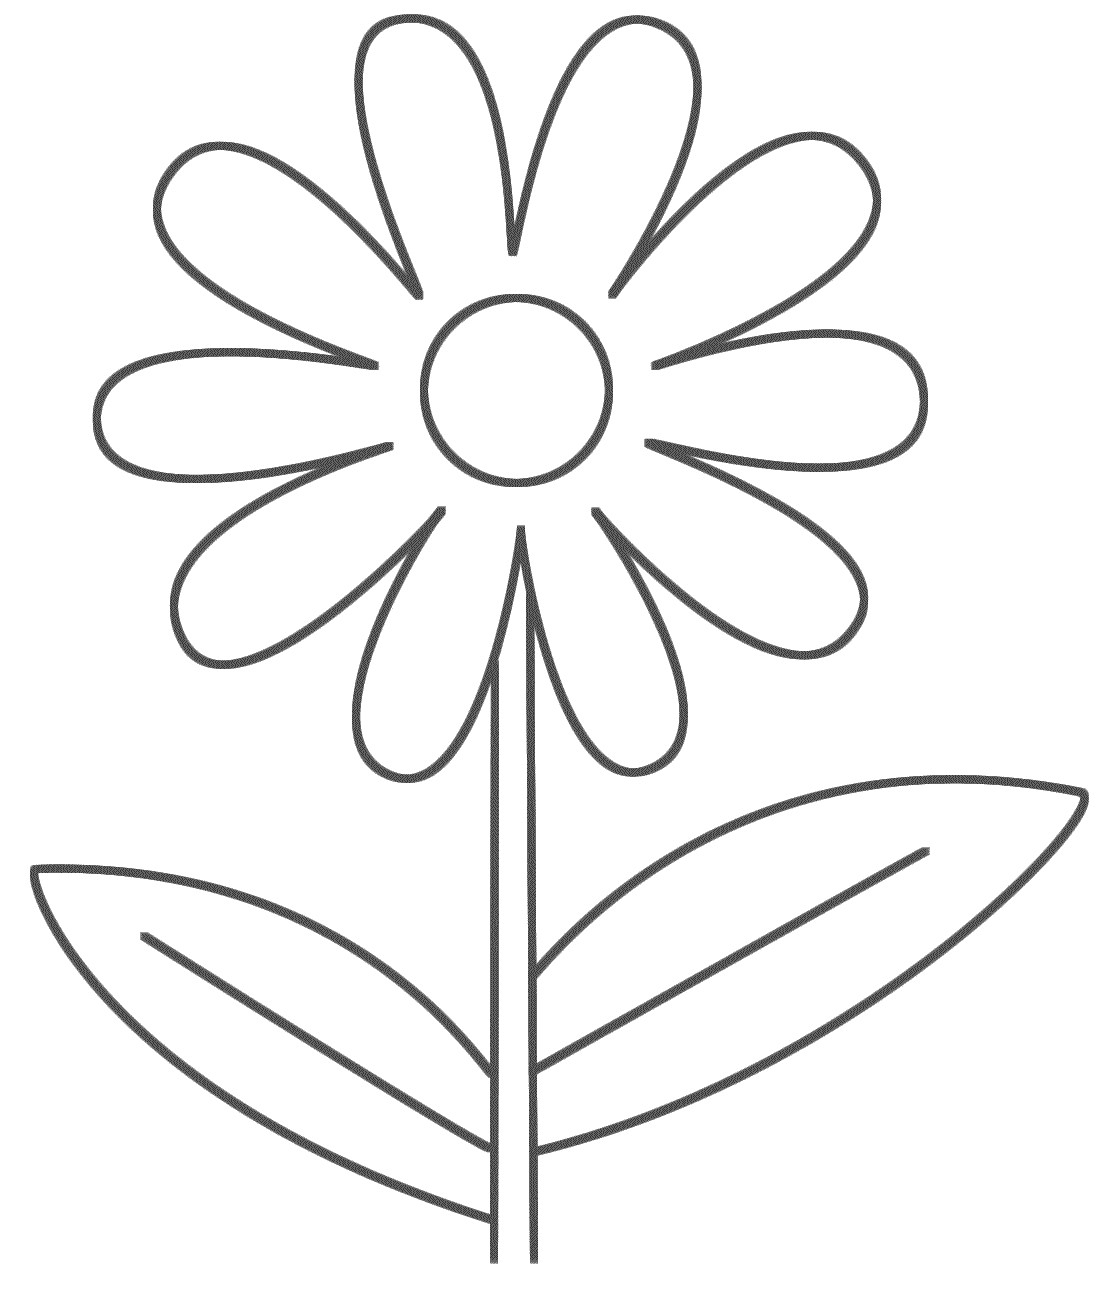 1109x1294 Flower Line Drawings How To Draw A Rose Flower Easy Line Drawing